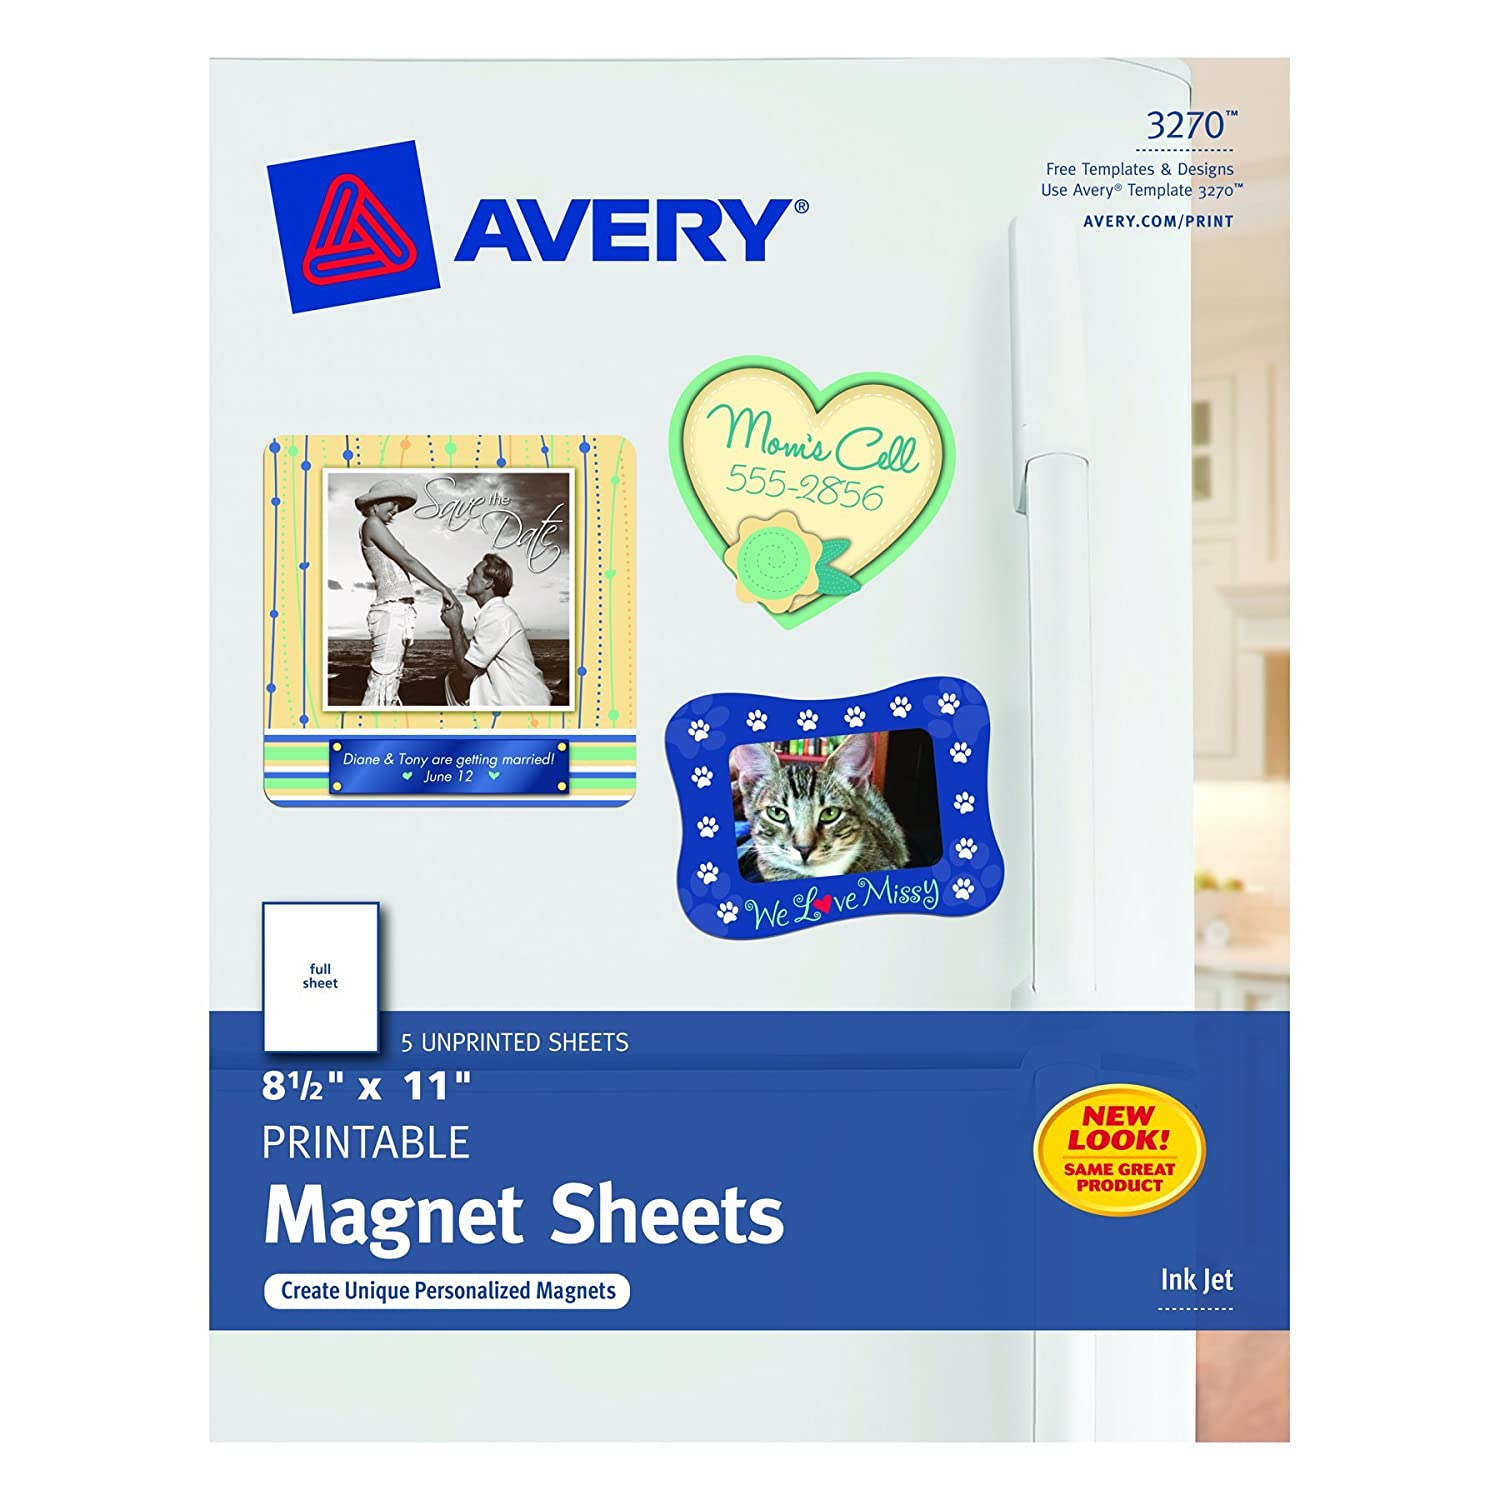 amazoncom avery magnet sheets 85 x 11 inches white 03270 inkjet printer paper office products - Free Printing Sheets